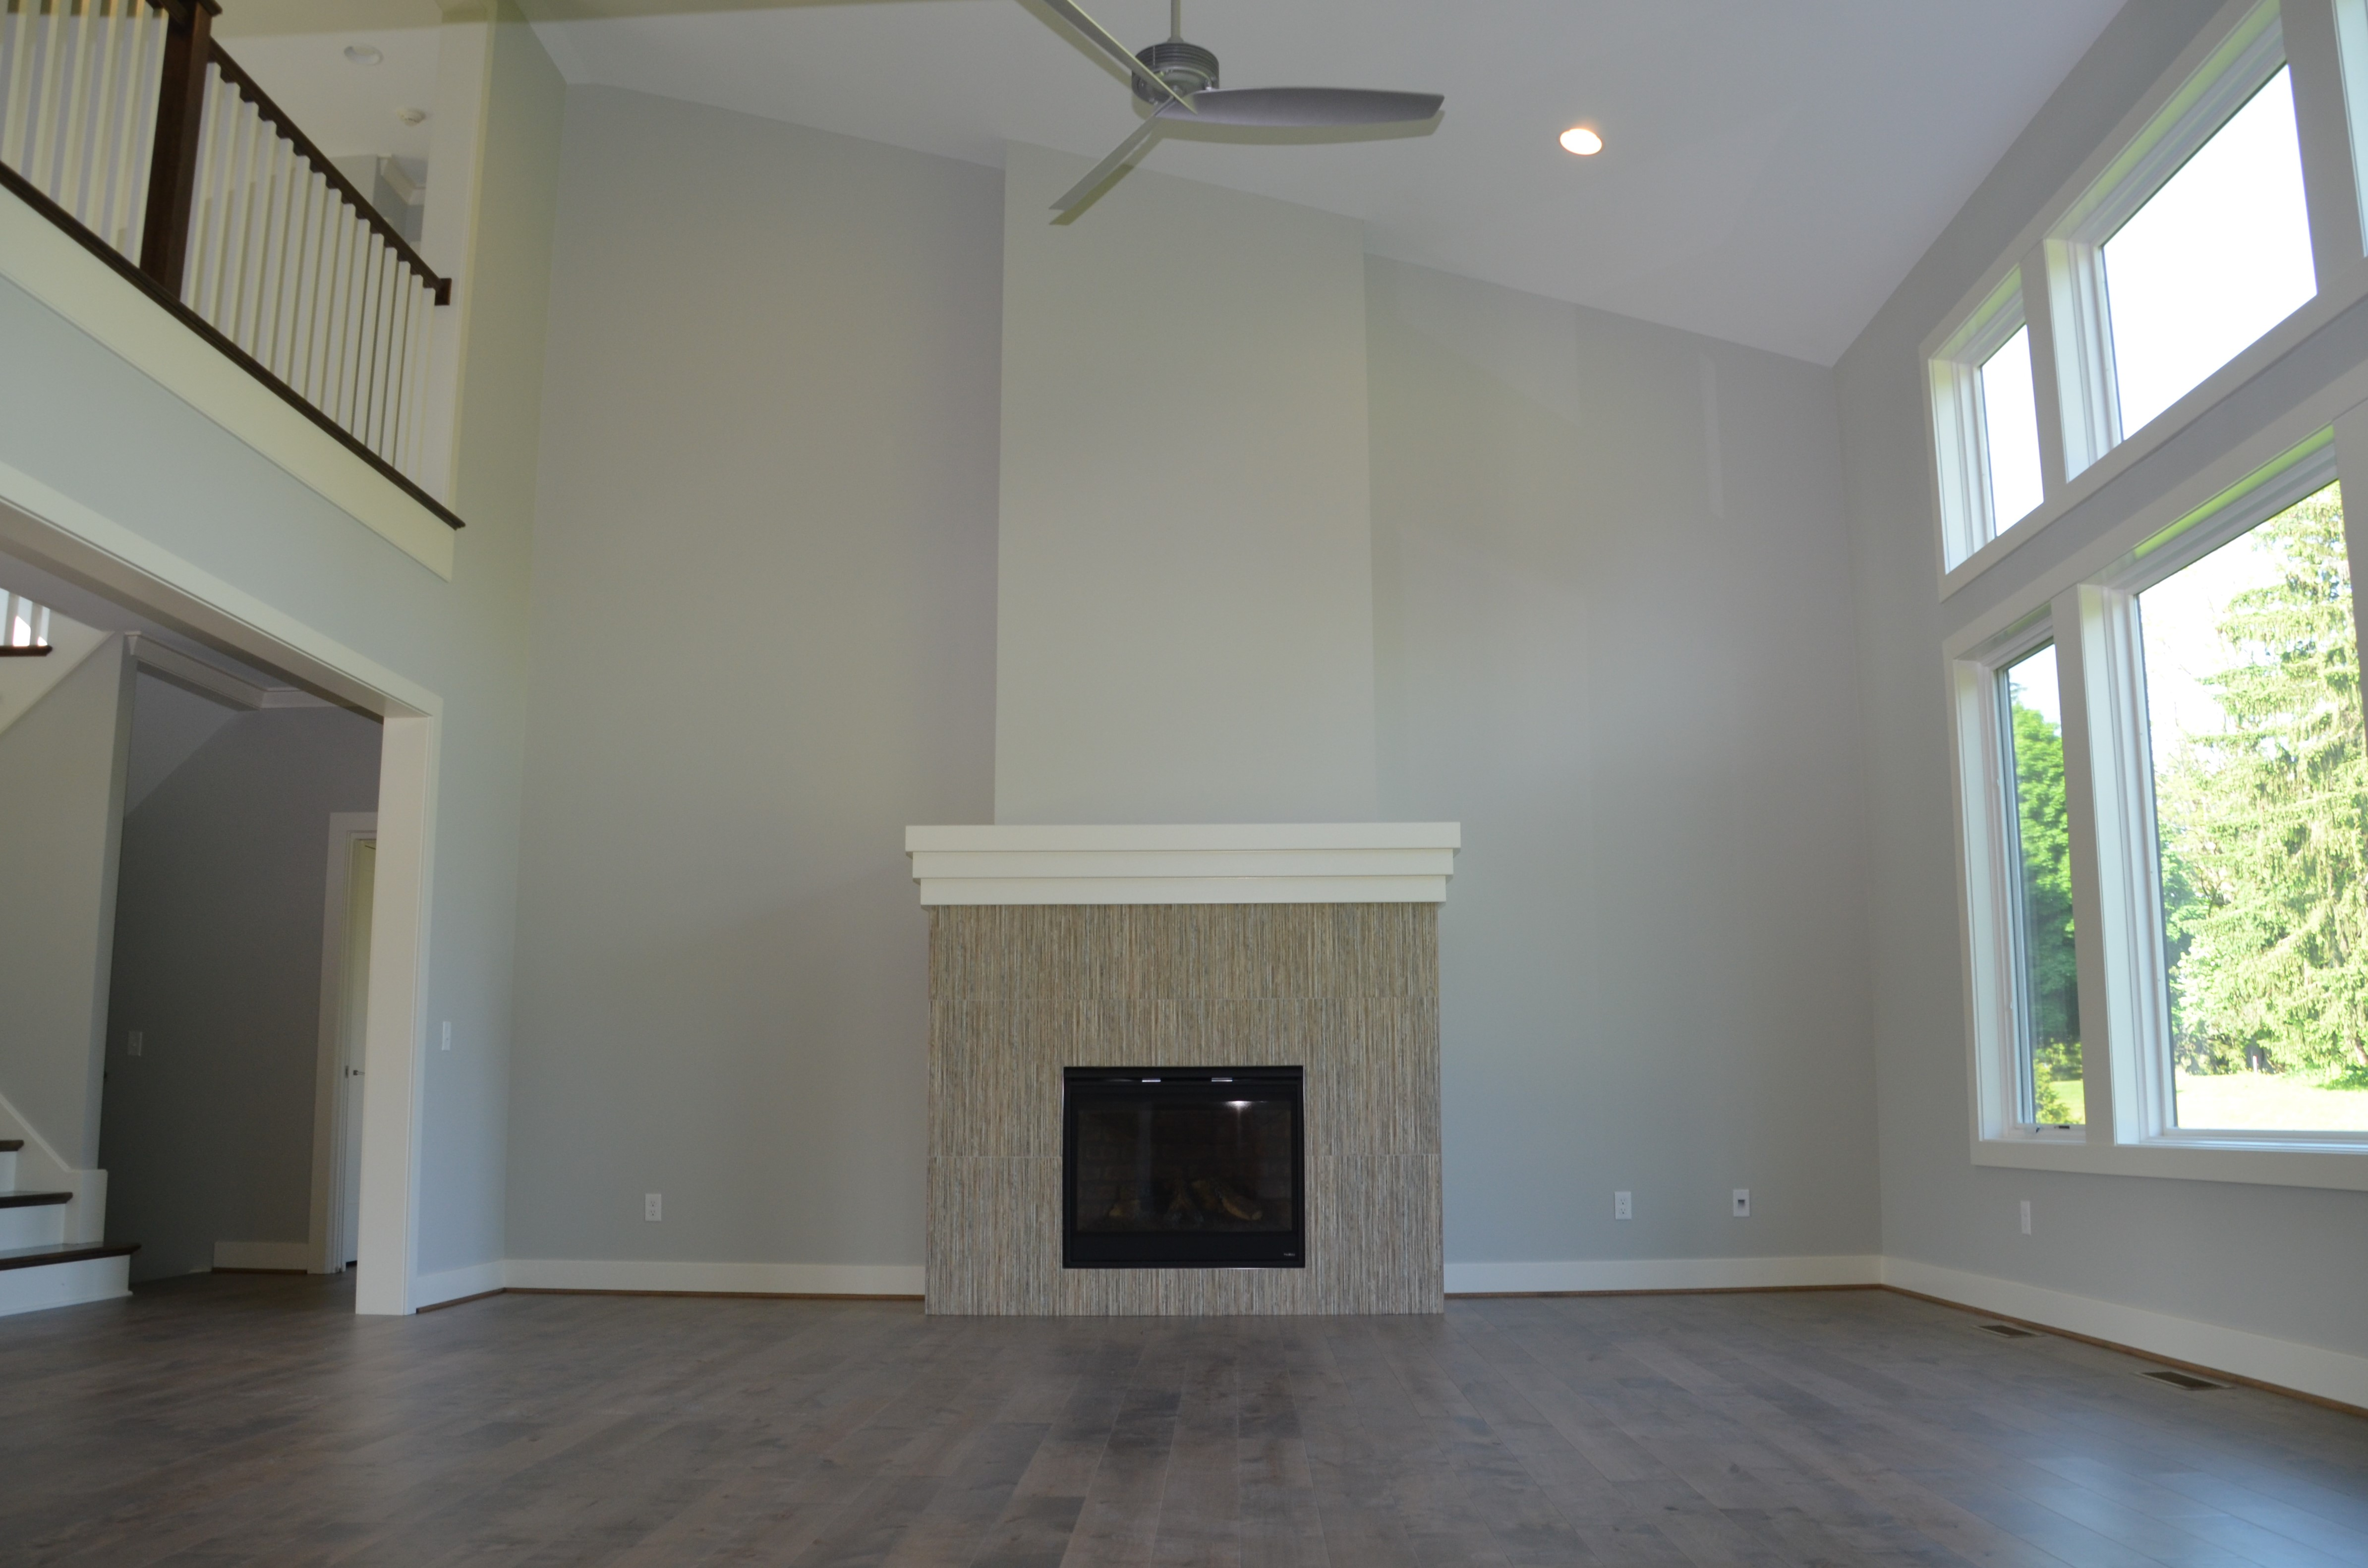 Room With Vaulted Ceilings in Ravenna Crescent (Lot 24)